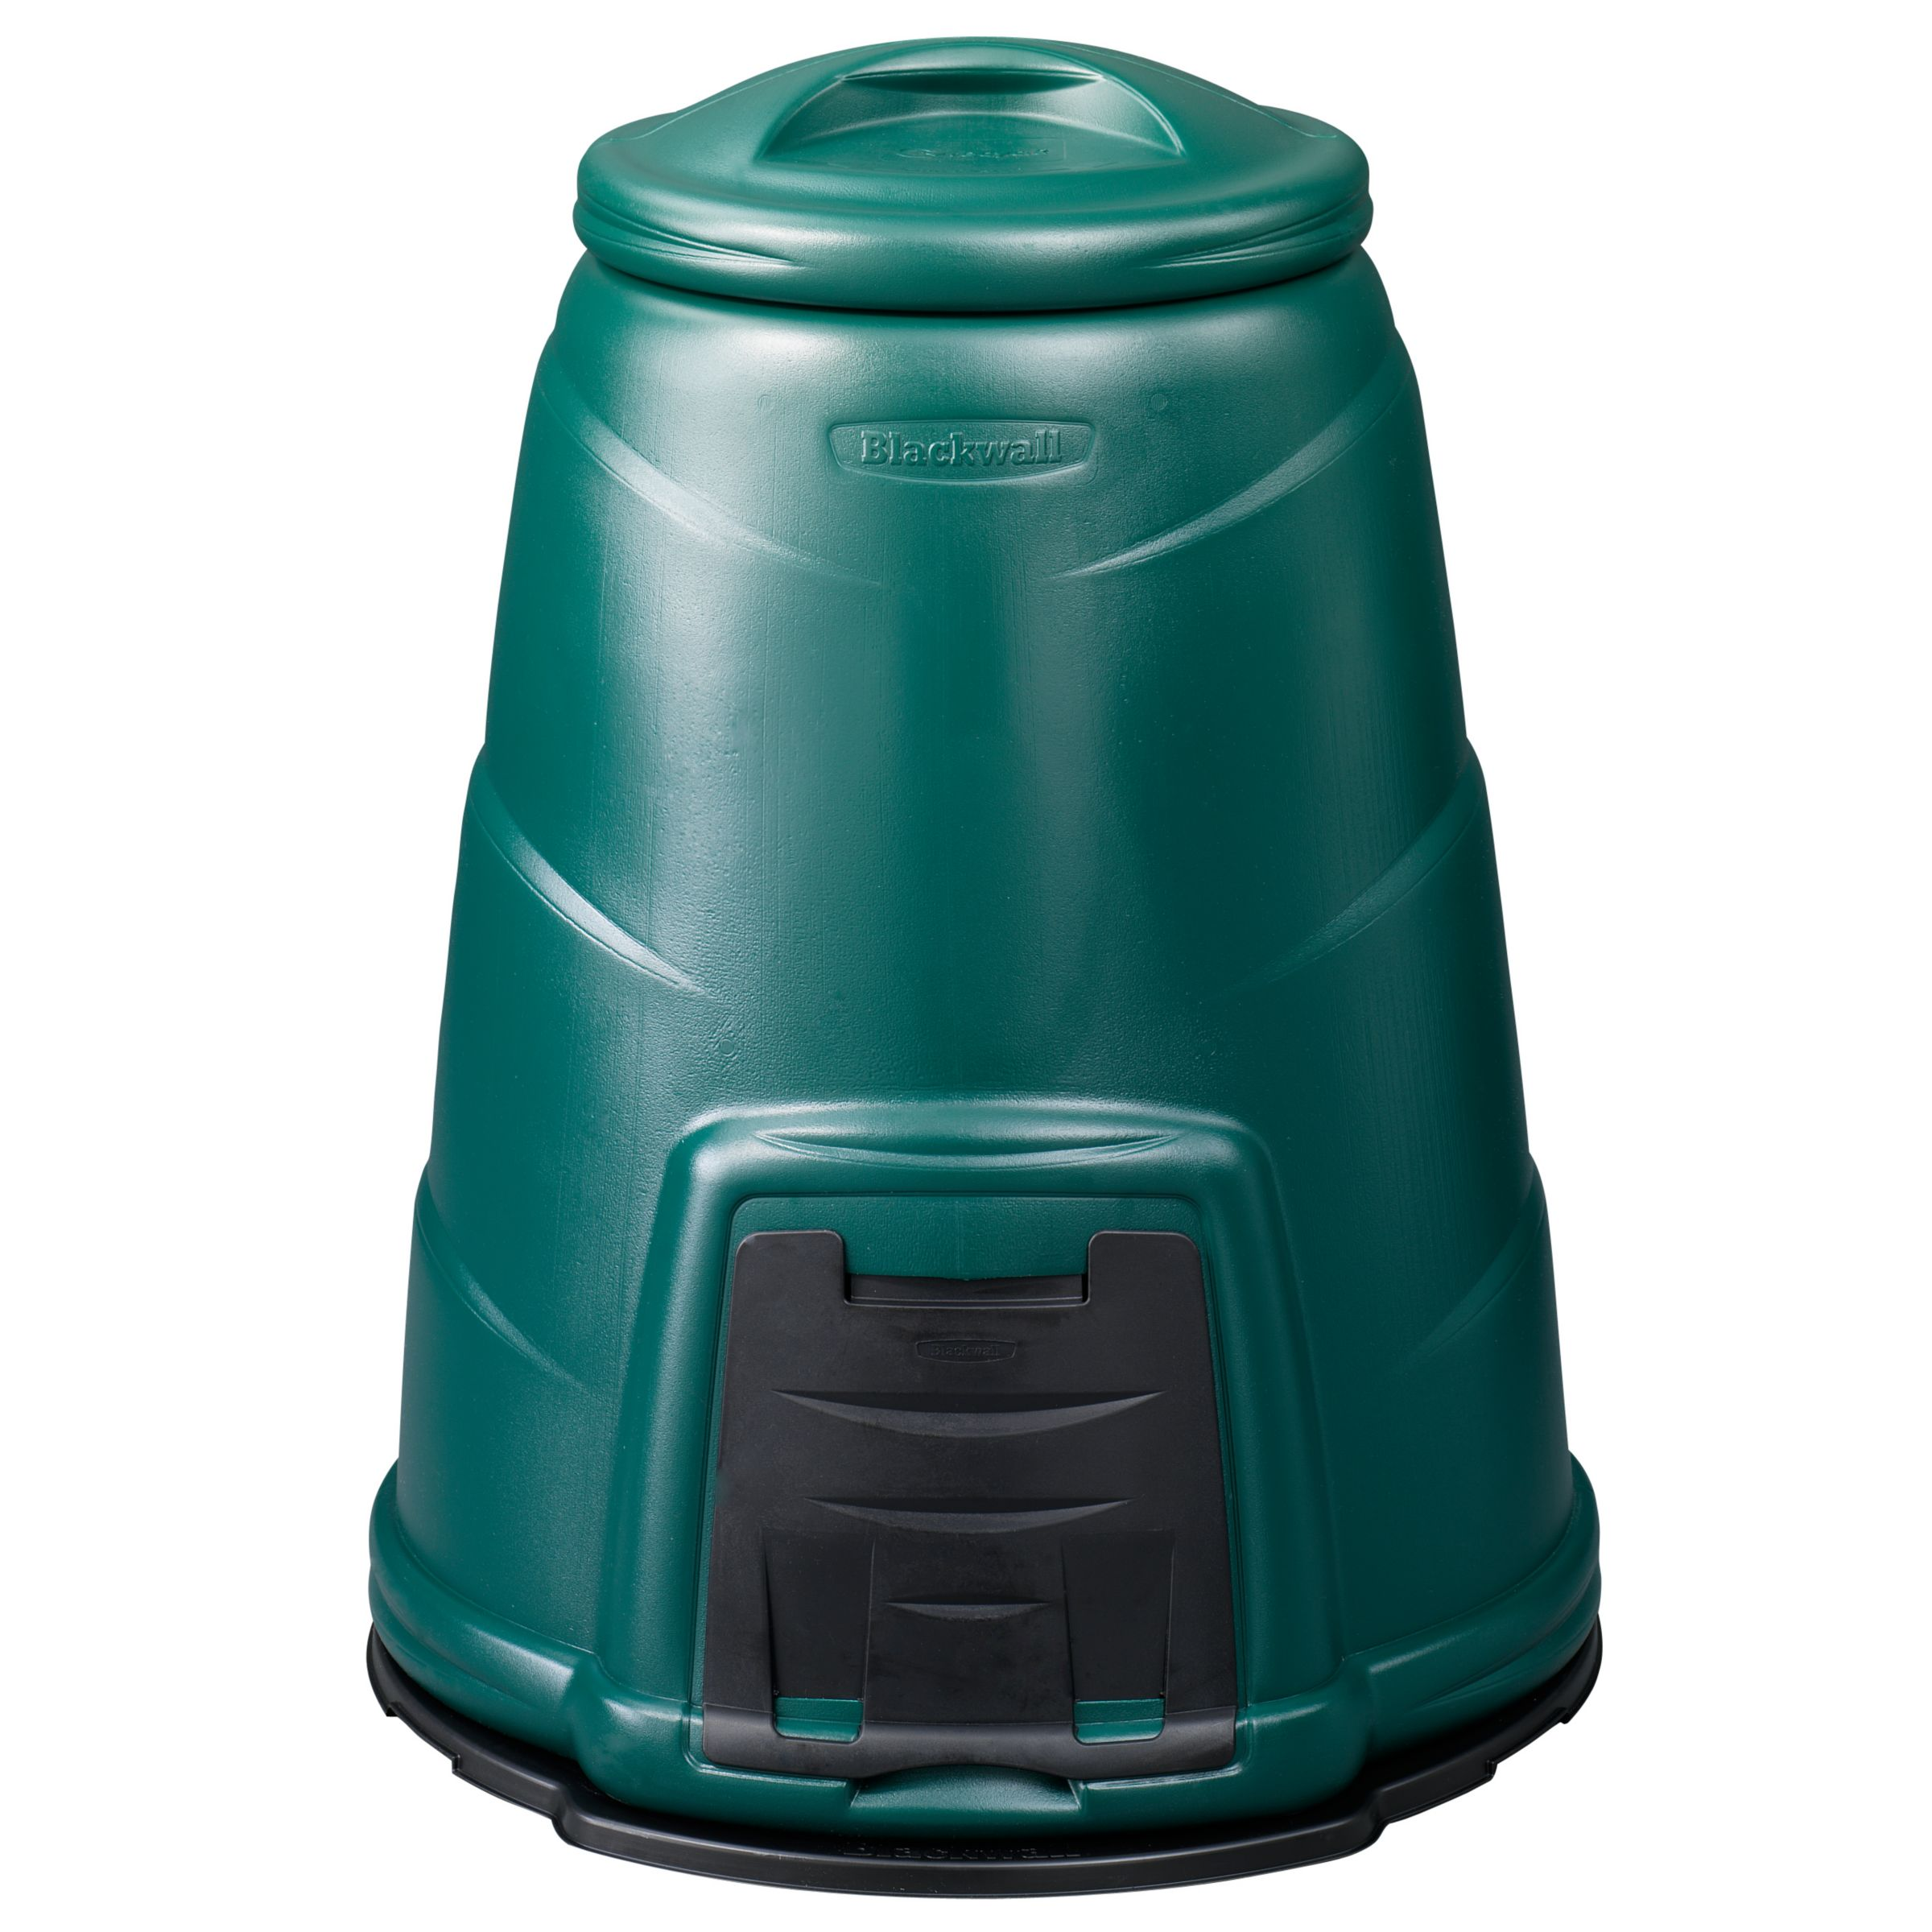 Blackwall Compost Converter, Green, 330 Litre